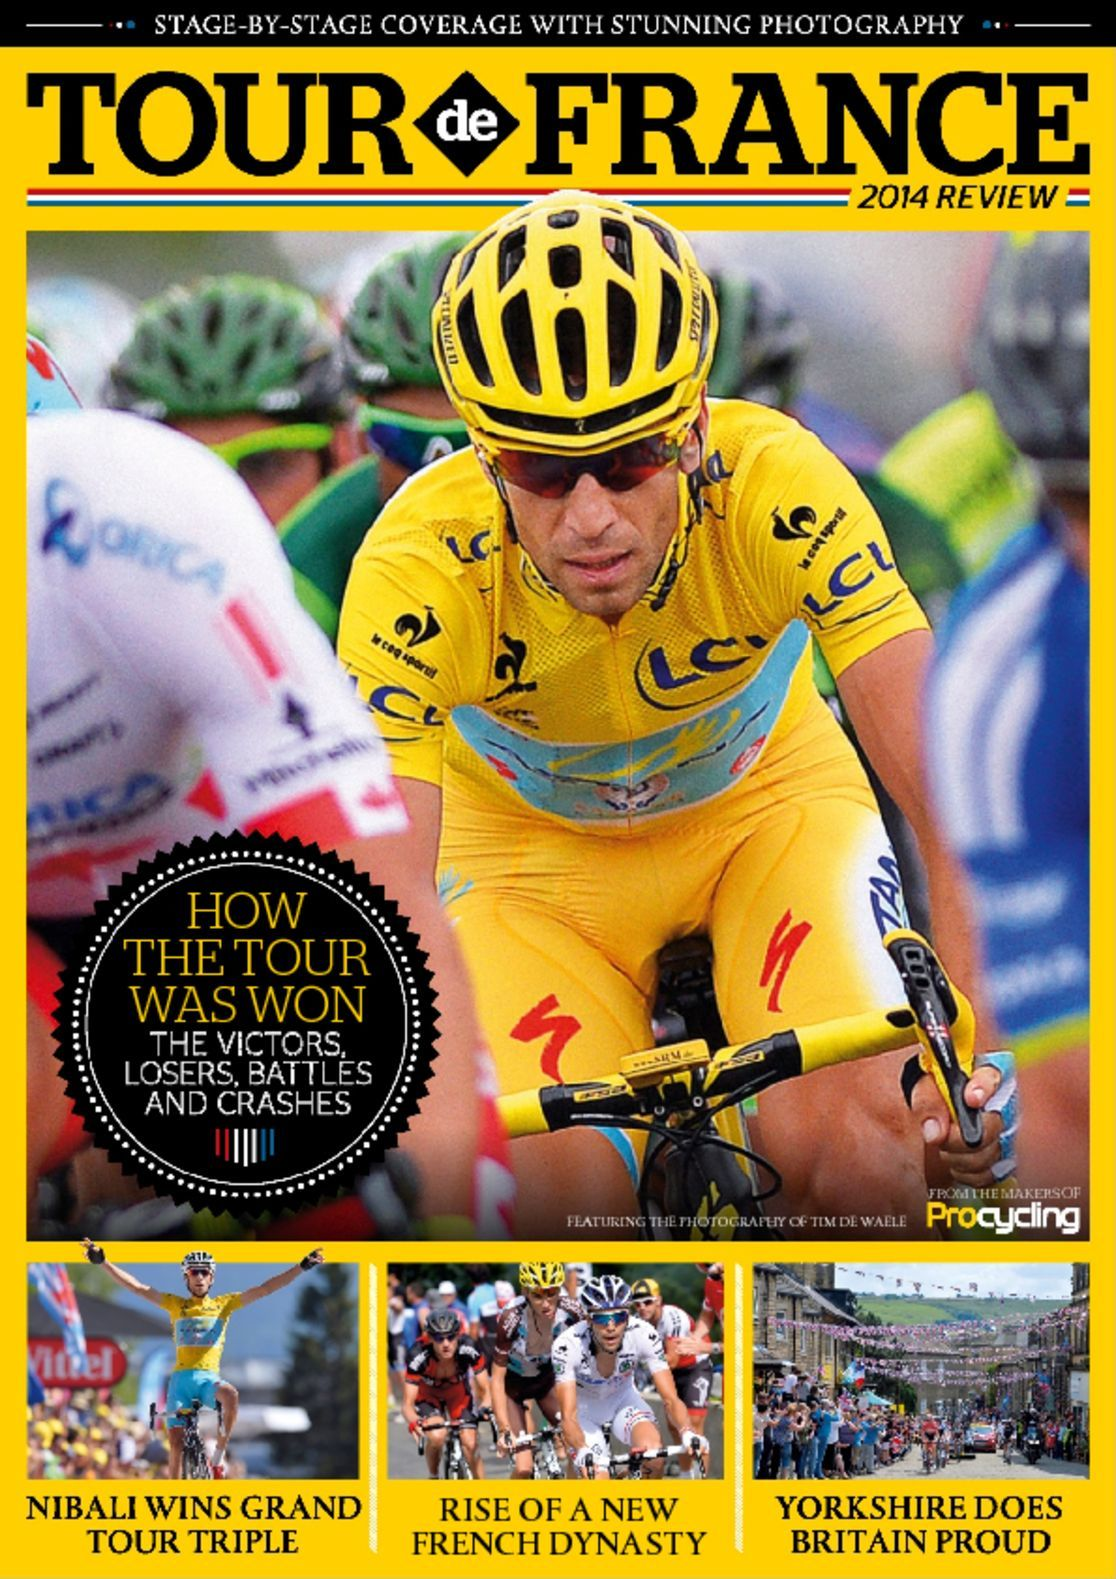 Tour de France 2014 Review (Digital)